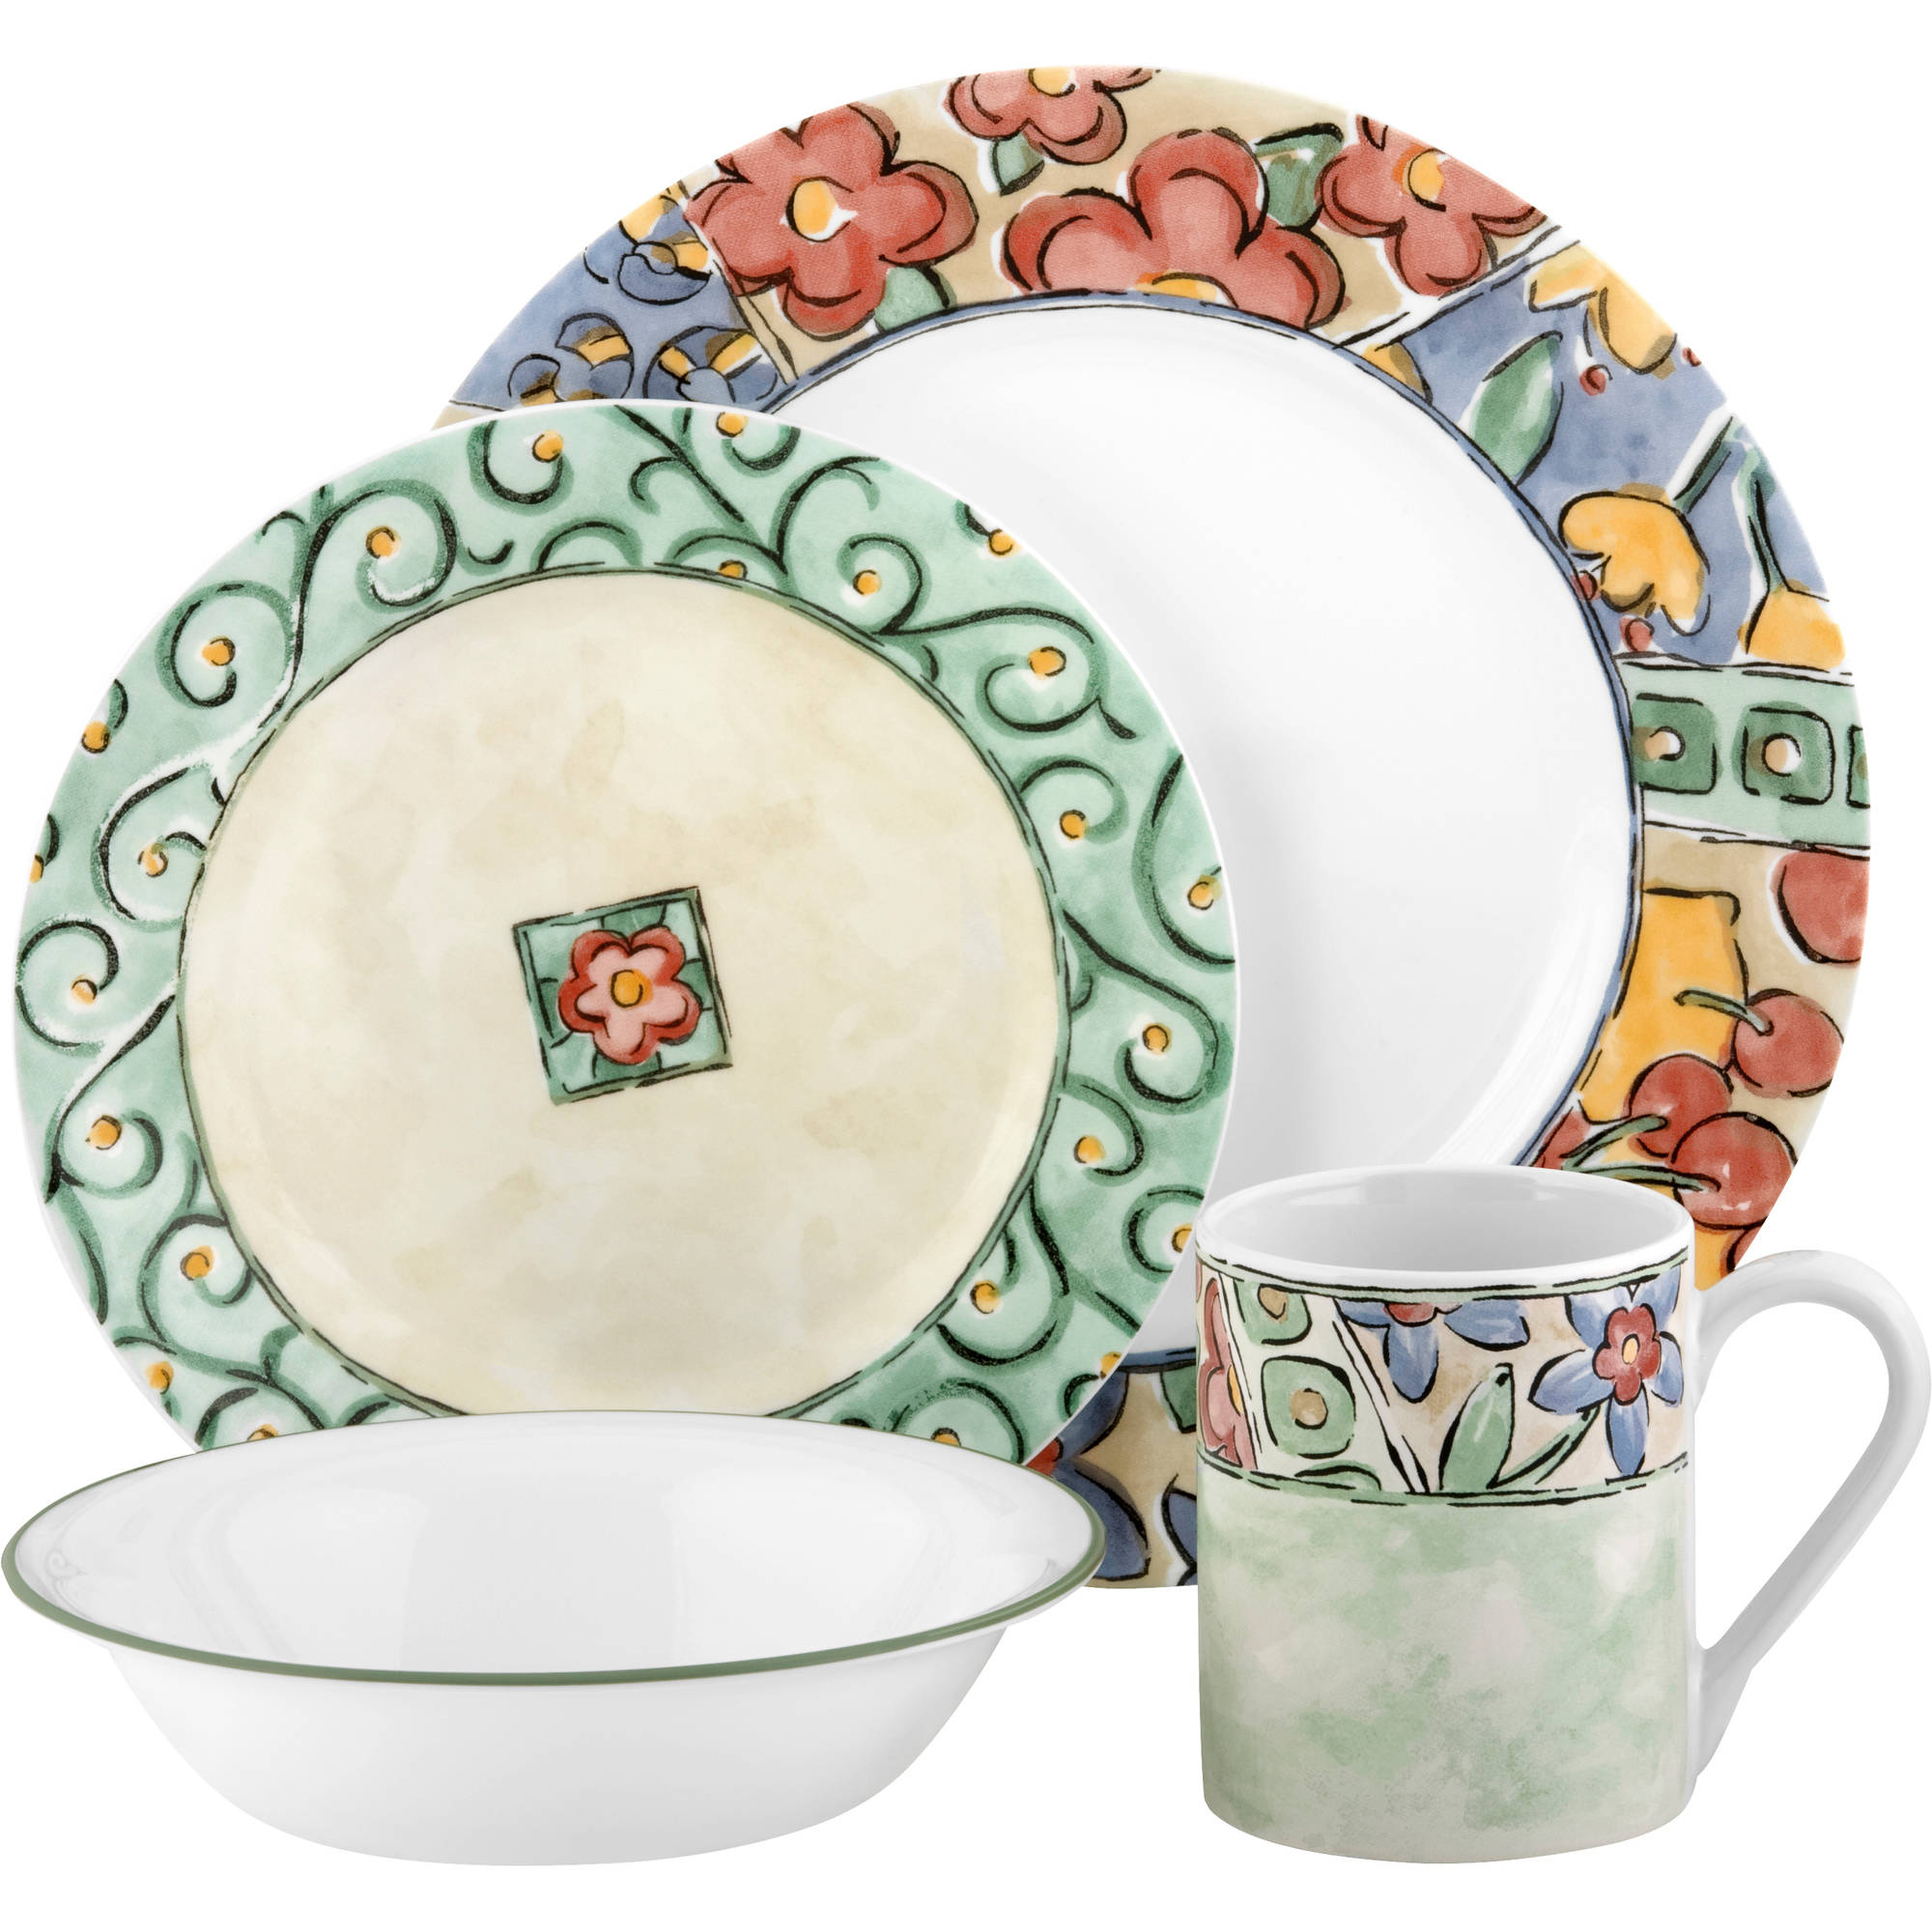 Corelle Impressions 16 Piece Dinnerware Set Watercolors Dinner Dishes Round NEW | eBay  sc 1 st  eBay & Corelle Impressions 16 Piece Dinnerware Set Watercolors Dinner ...